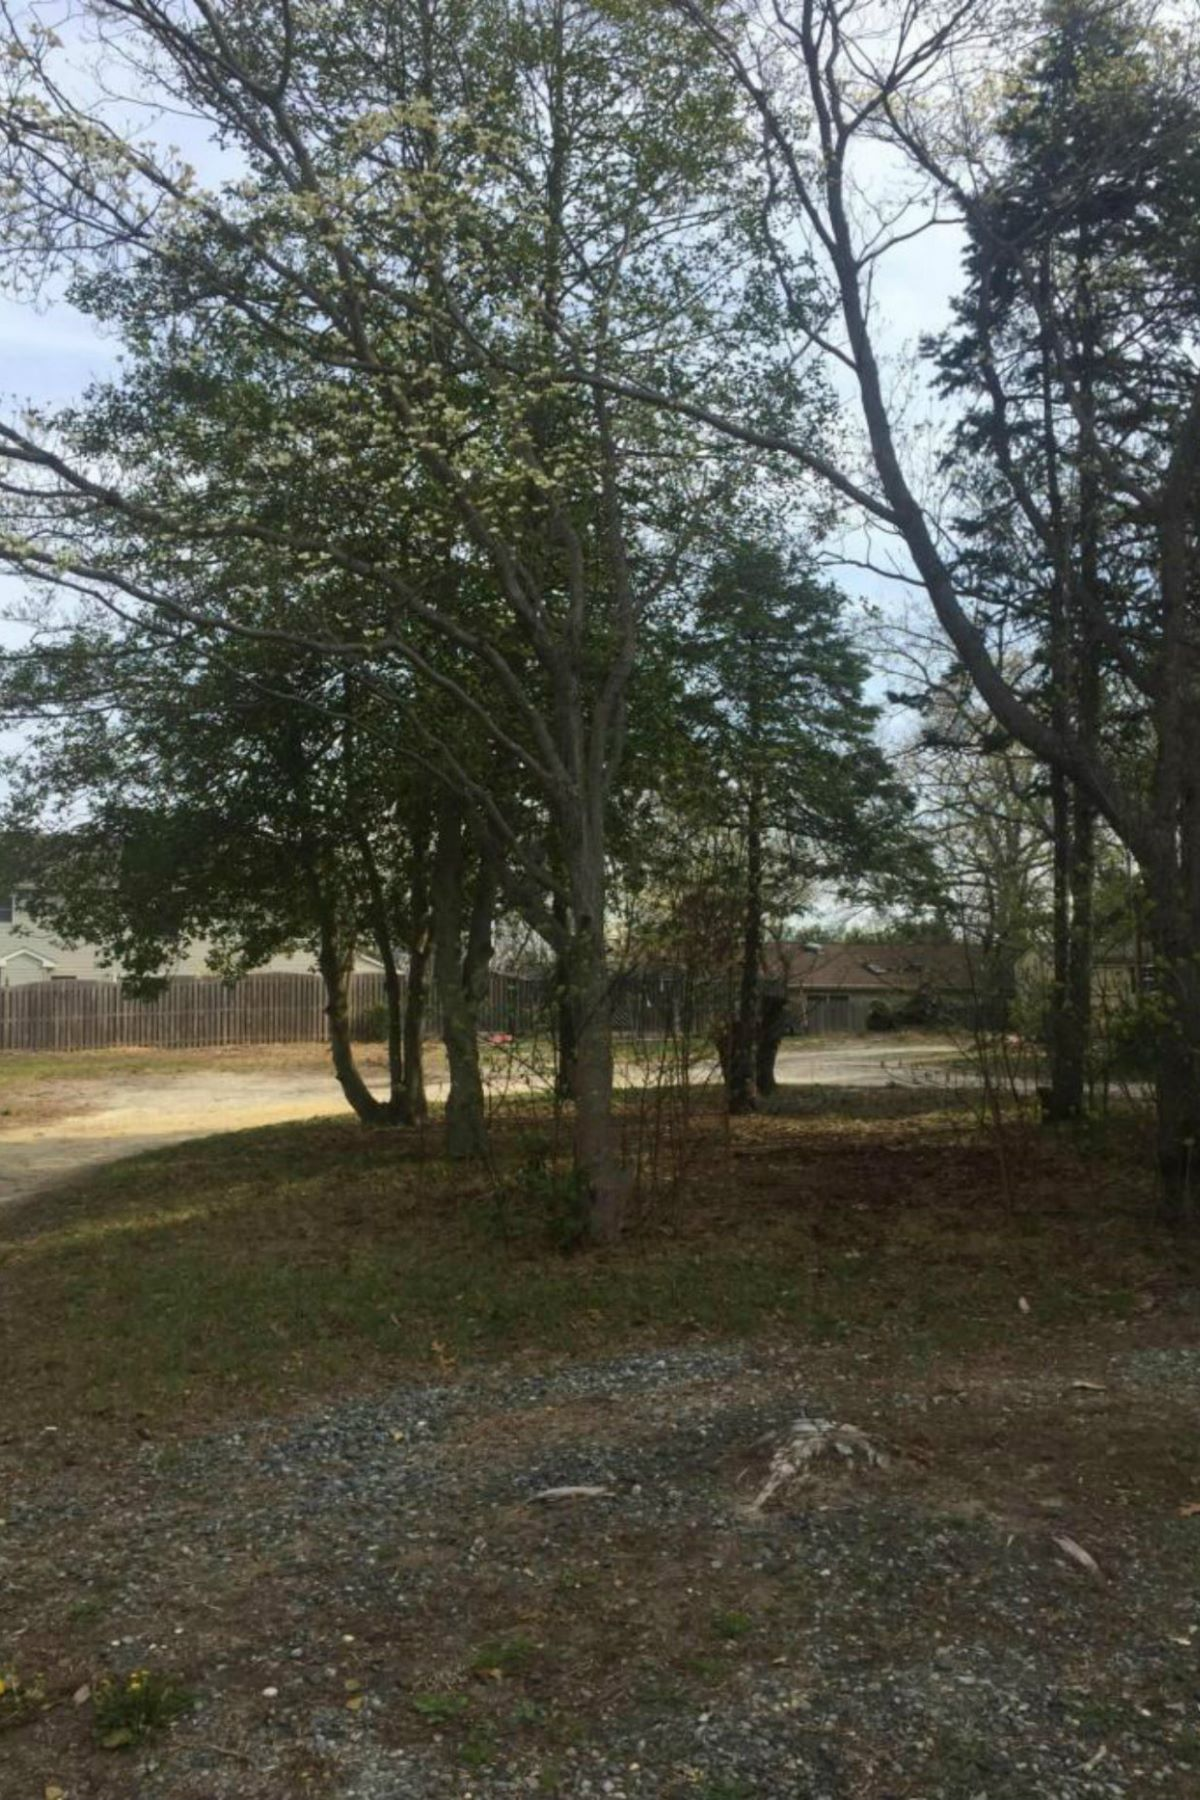 Land for Sale at Build Your Dream Home 248 Van Zile Road, Brick, New Jersey, 08724 United States